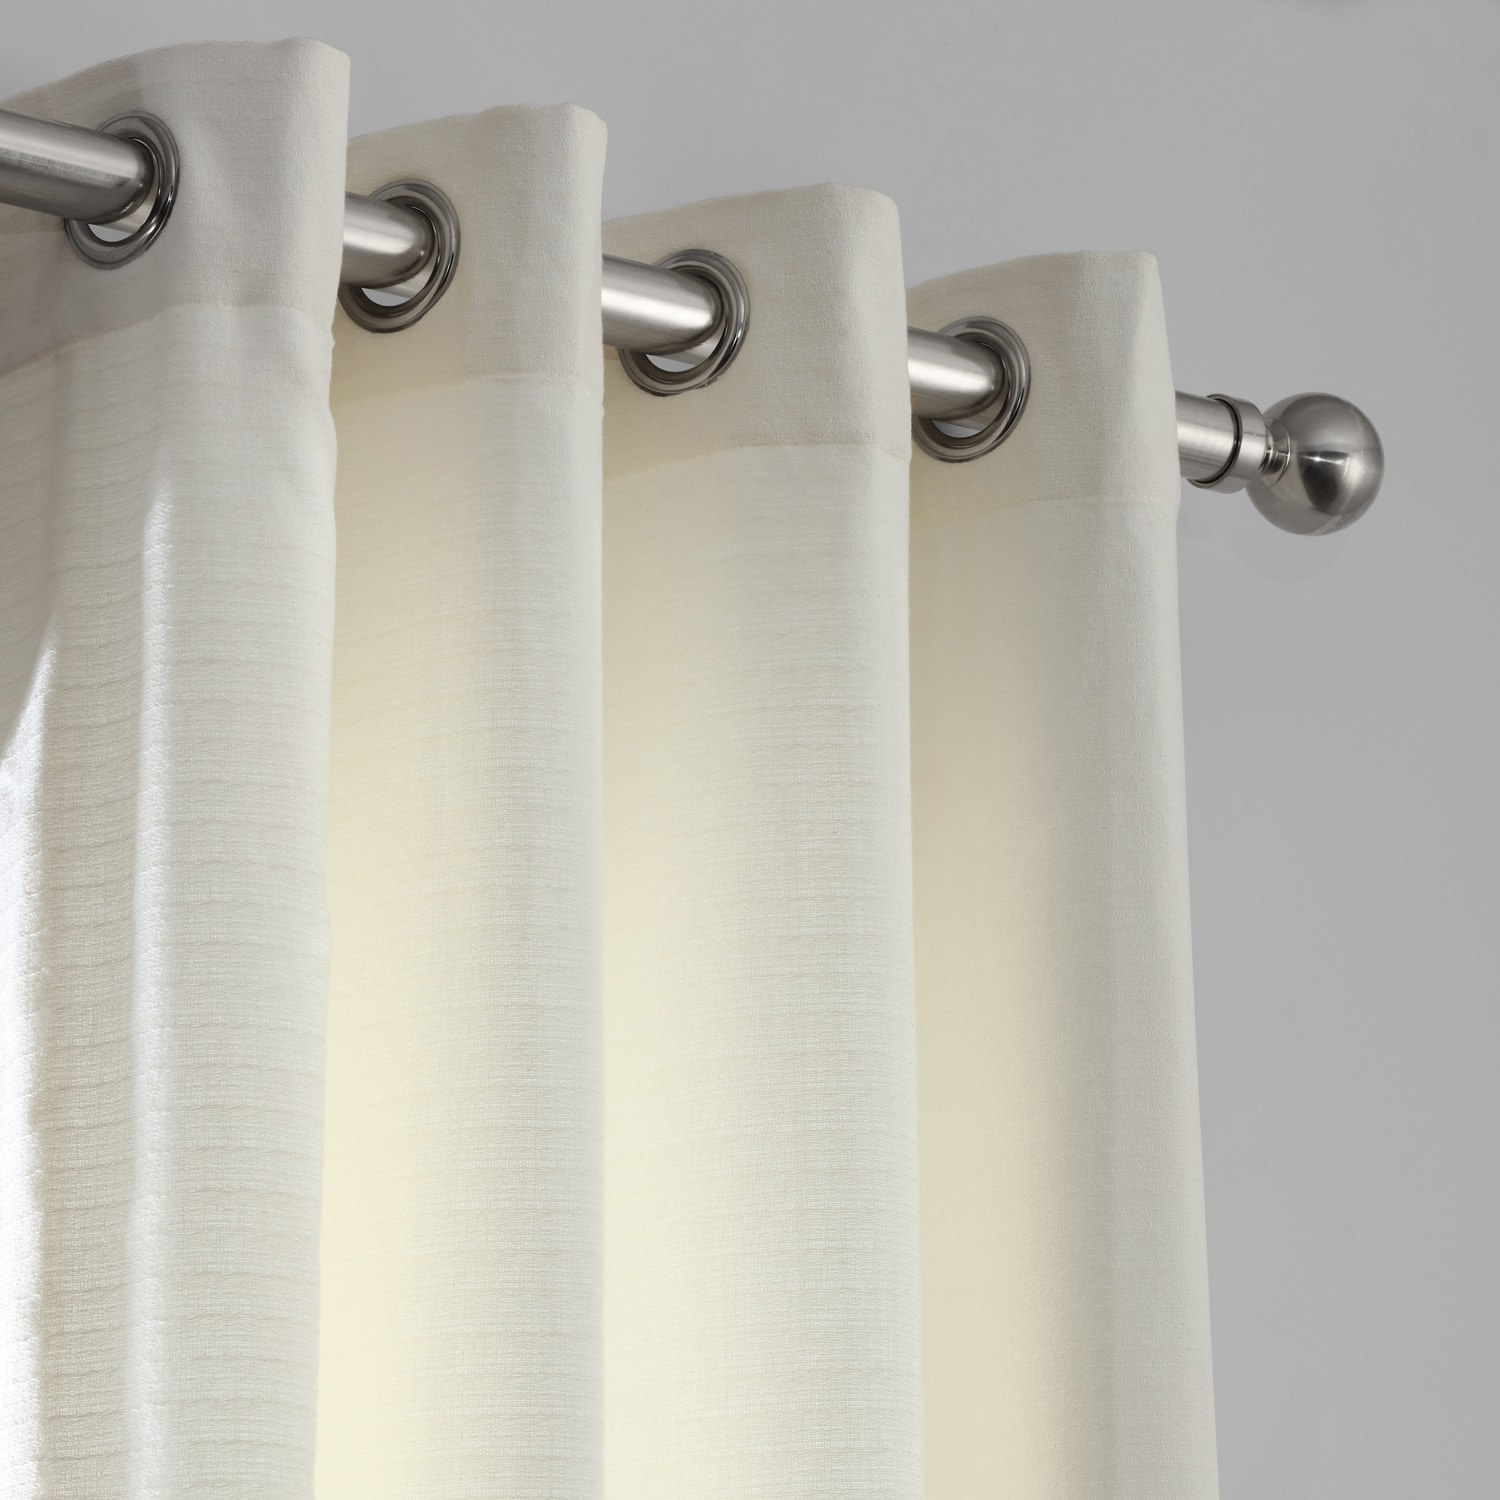 Birch Bark Weave Solid Cotton Grommet Curtain Inside Ombre Stripe Yarn Dyed Cotton Window Curtain Panel Pairs (View 16 of 20)